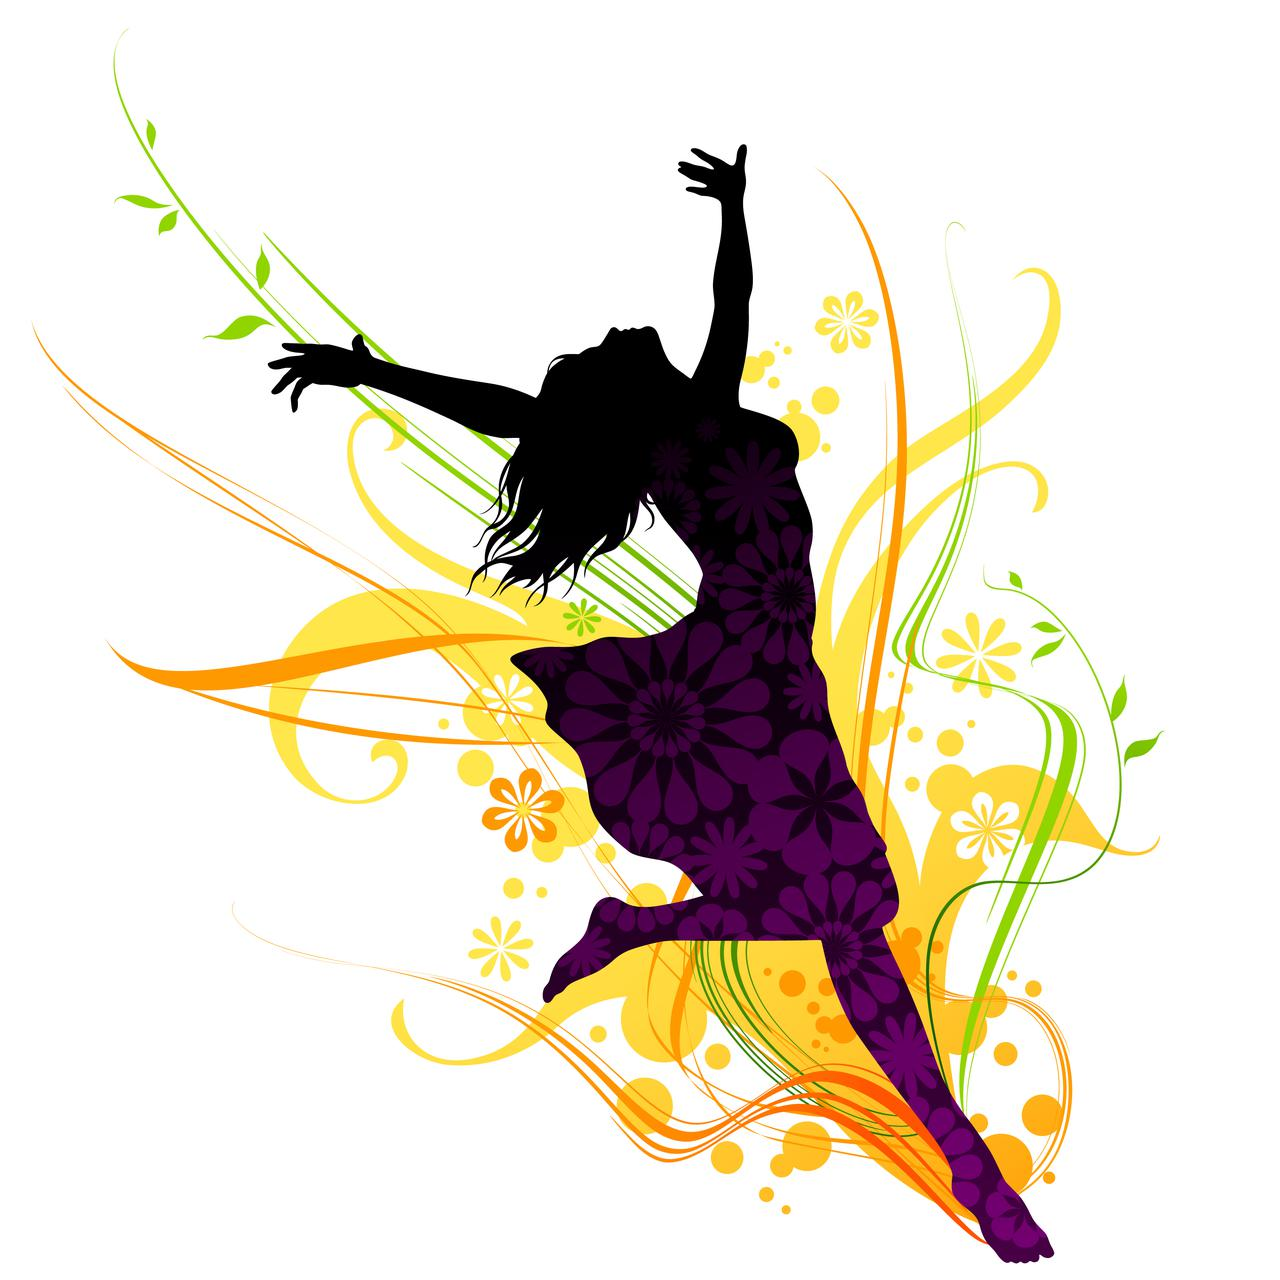 praise-clipart-happy-black-girl-4.jpg